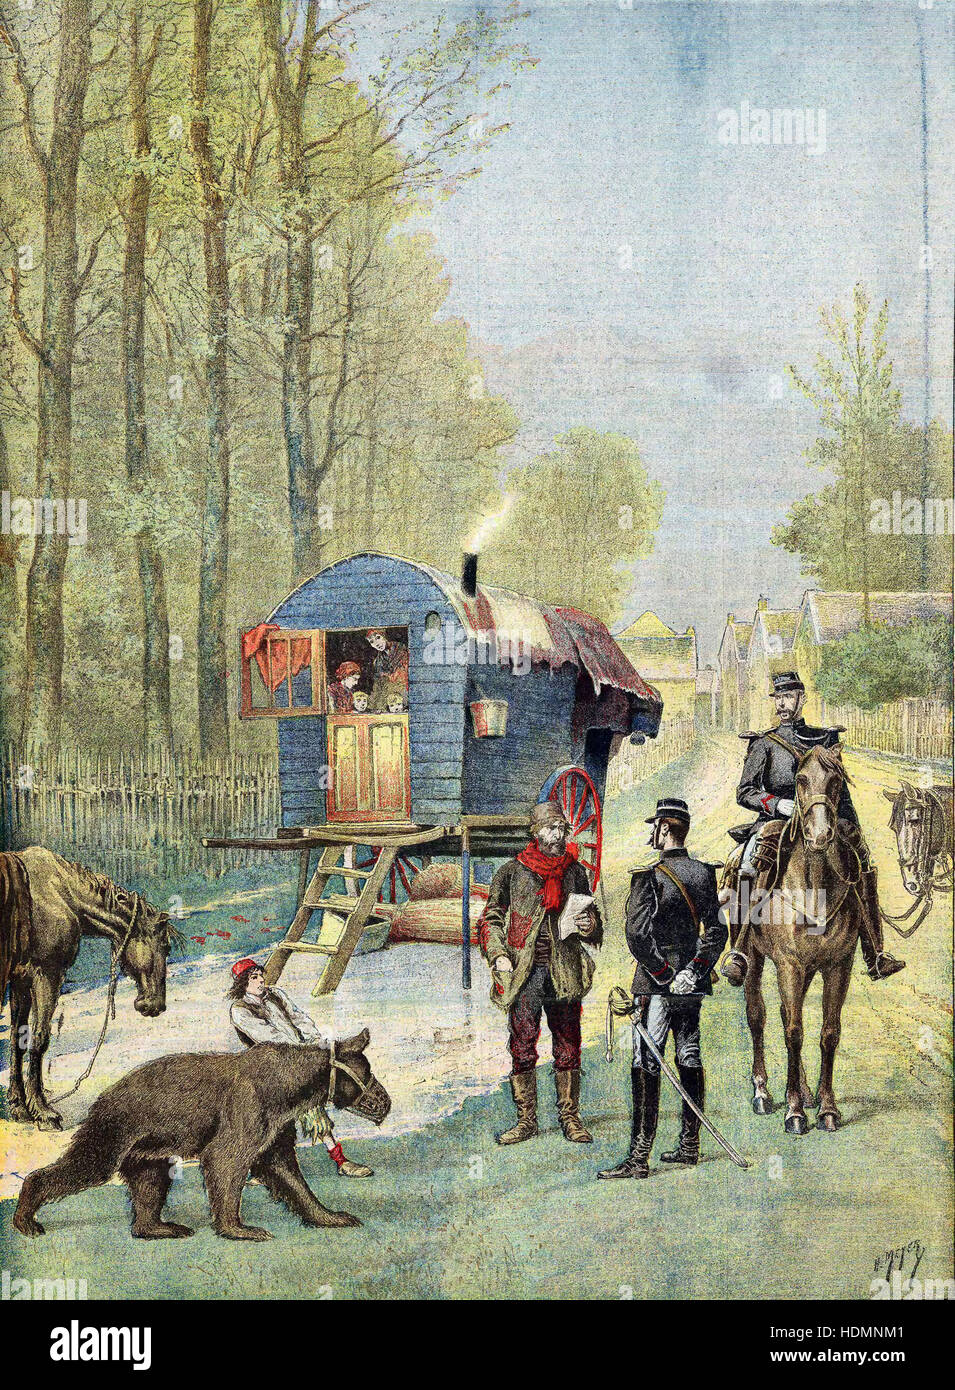 'Le Petit Journal' Paris, May 1895 - Gendarmes and gipsies - Stock Image